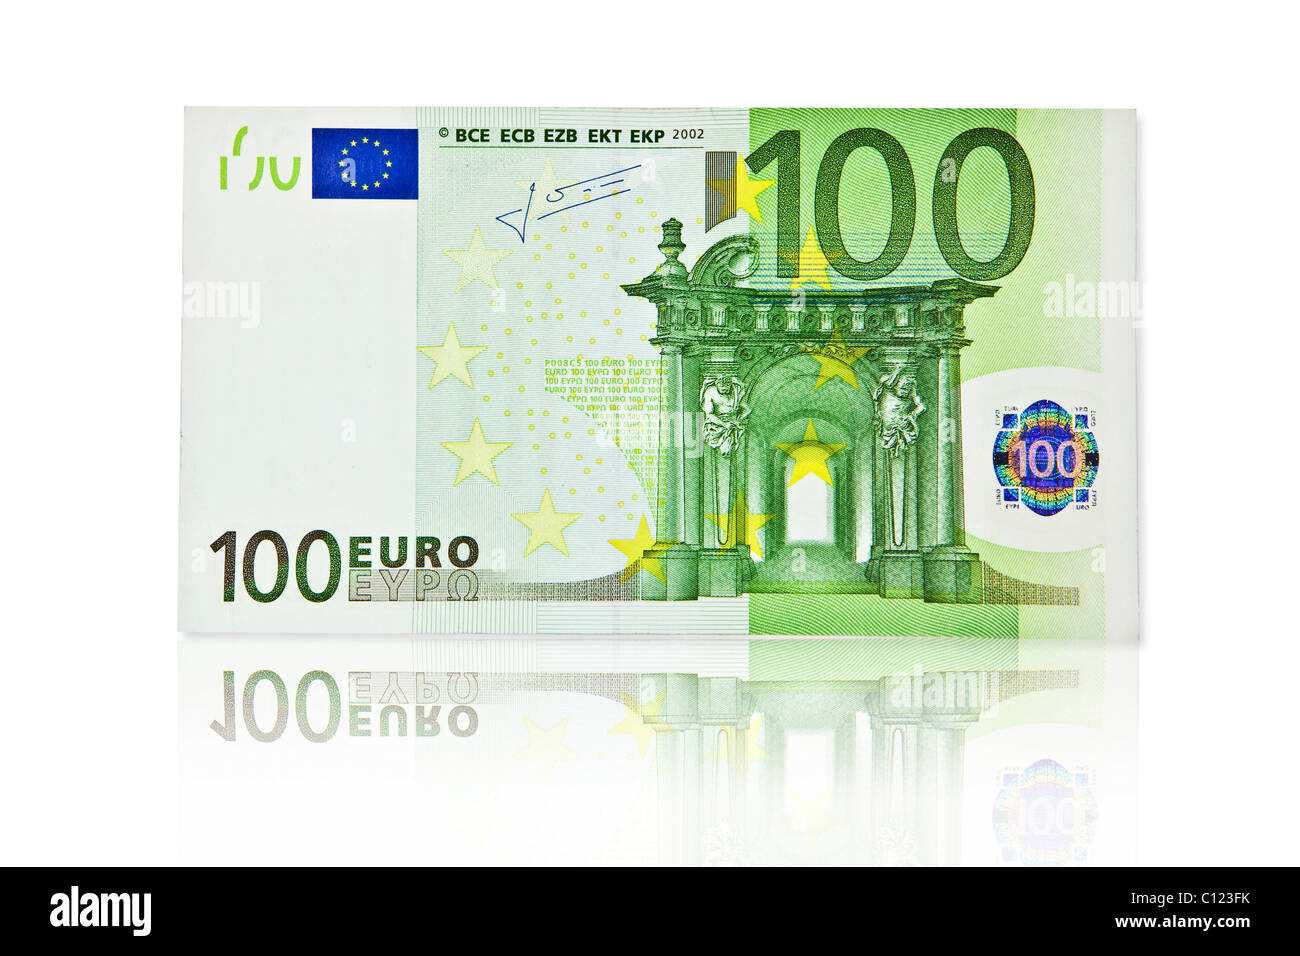 100 euro banknote front stock photo 35082087 alamy. Black Bedroom Furniture Sets. Home Design Ideas